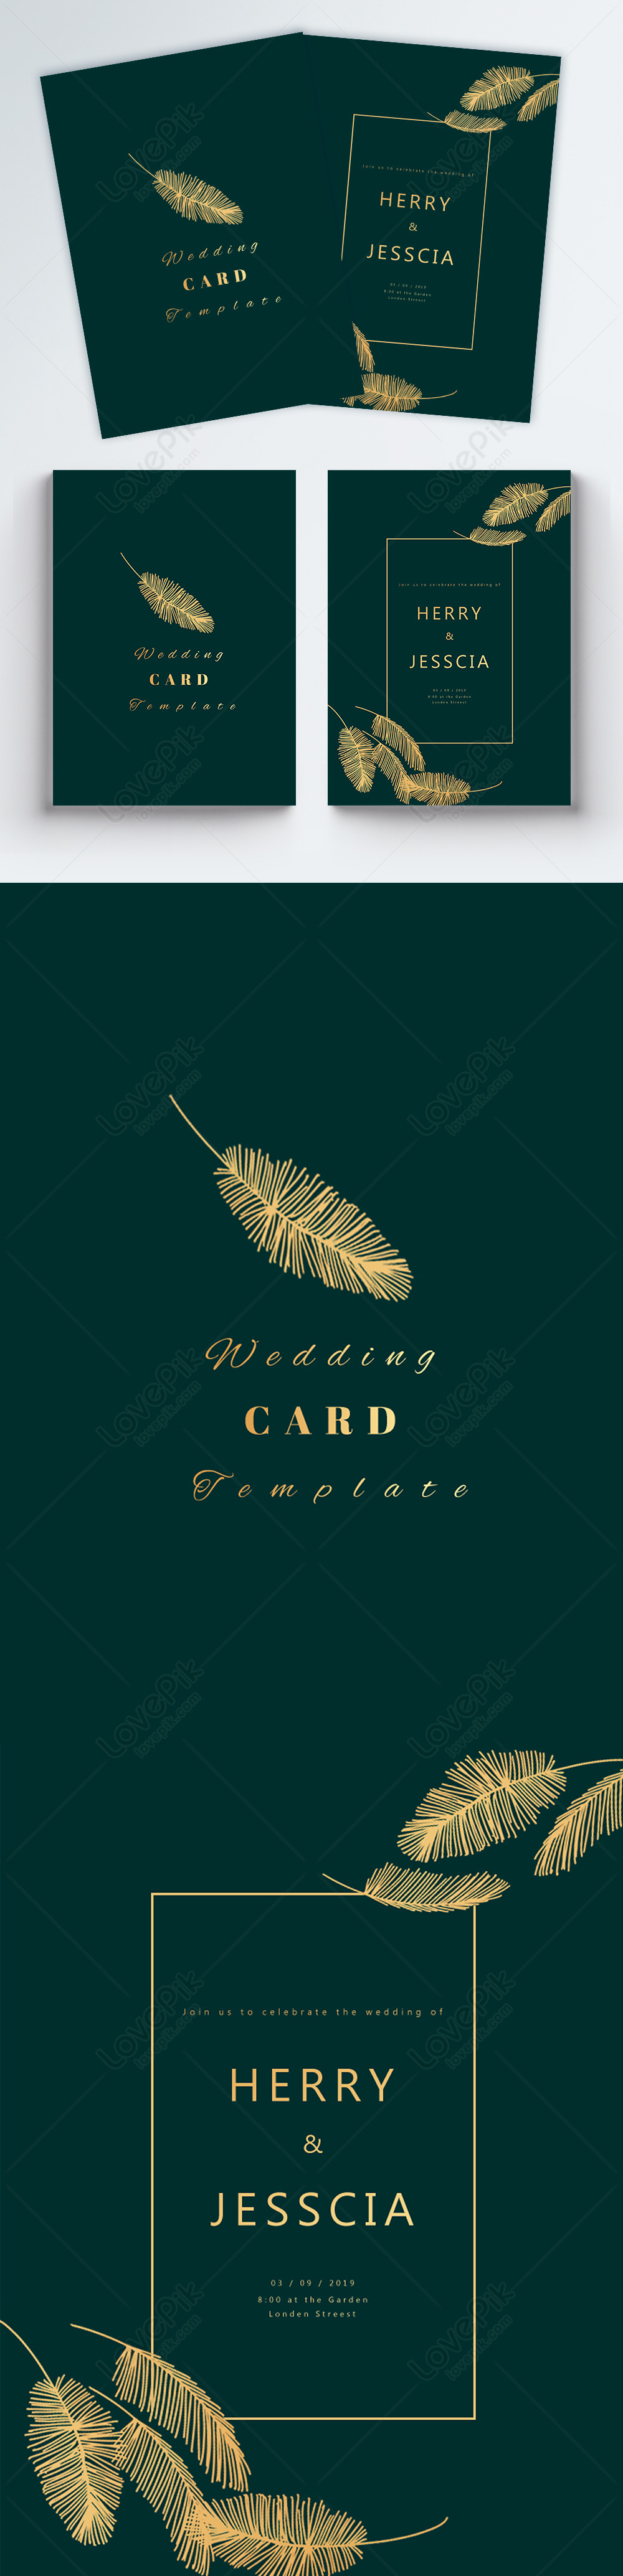 Simple Emerald Wedding Invitation Card Template Image Picture Free Download 450000837 Lovepik Com